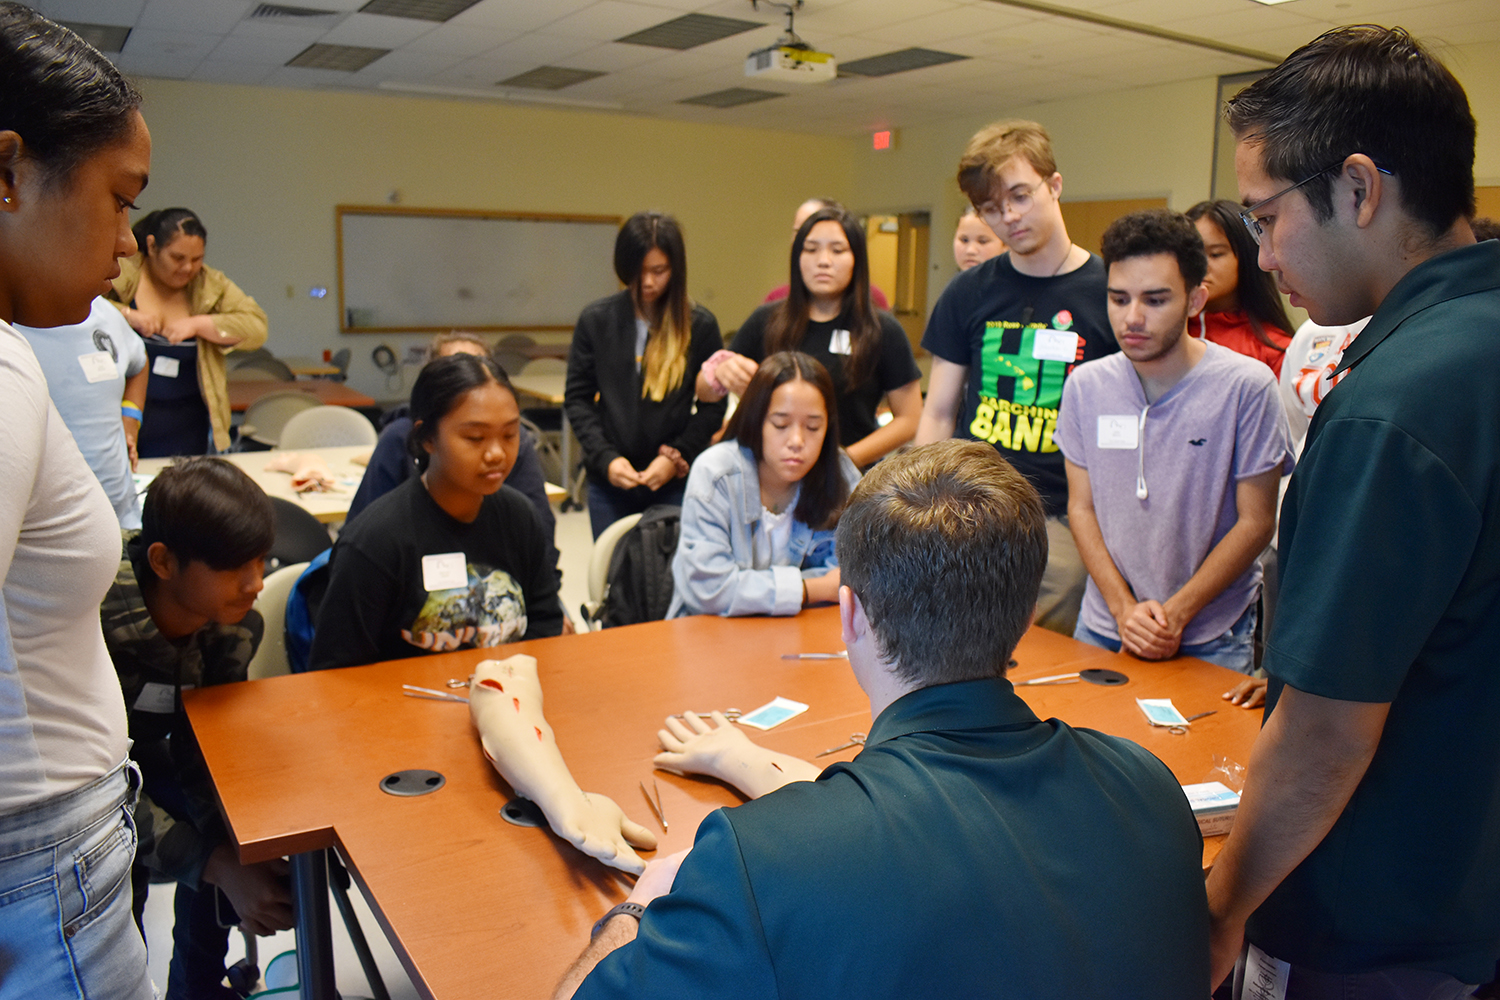 Participants learn to suture a mock arm